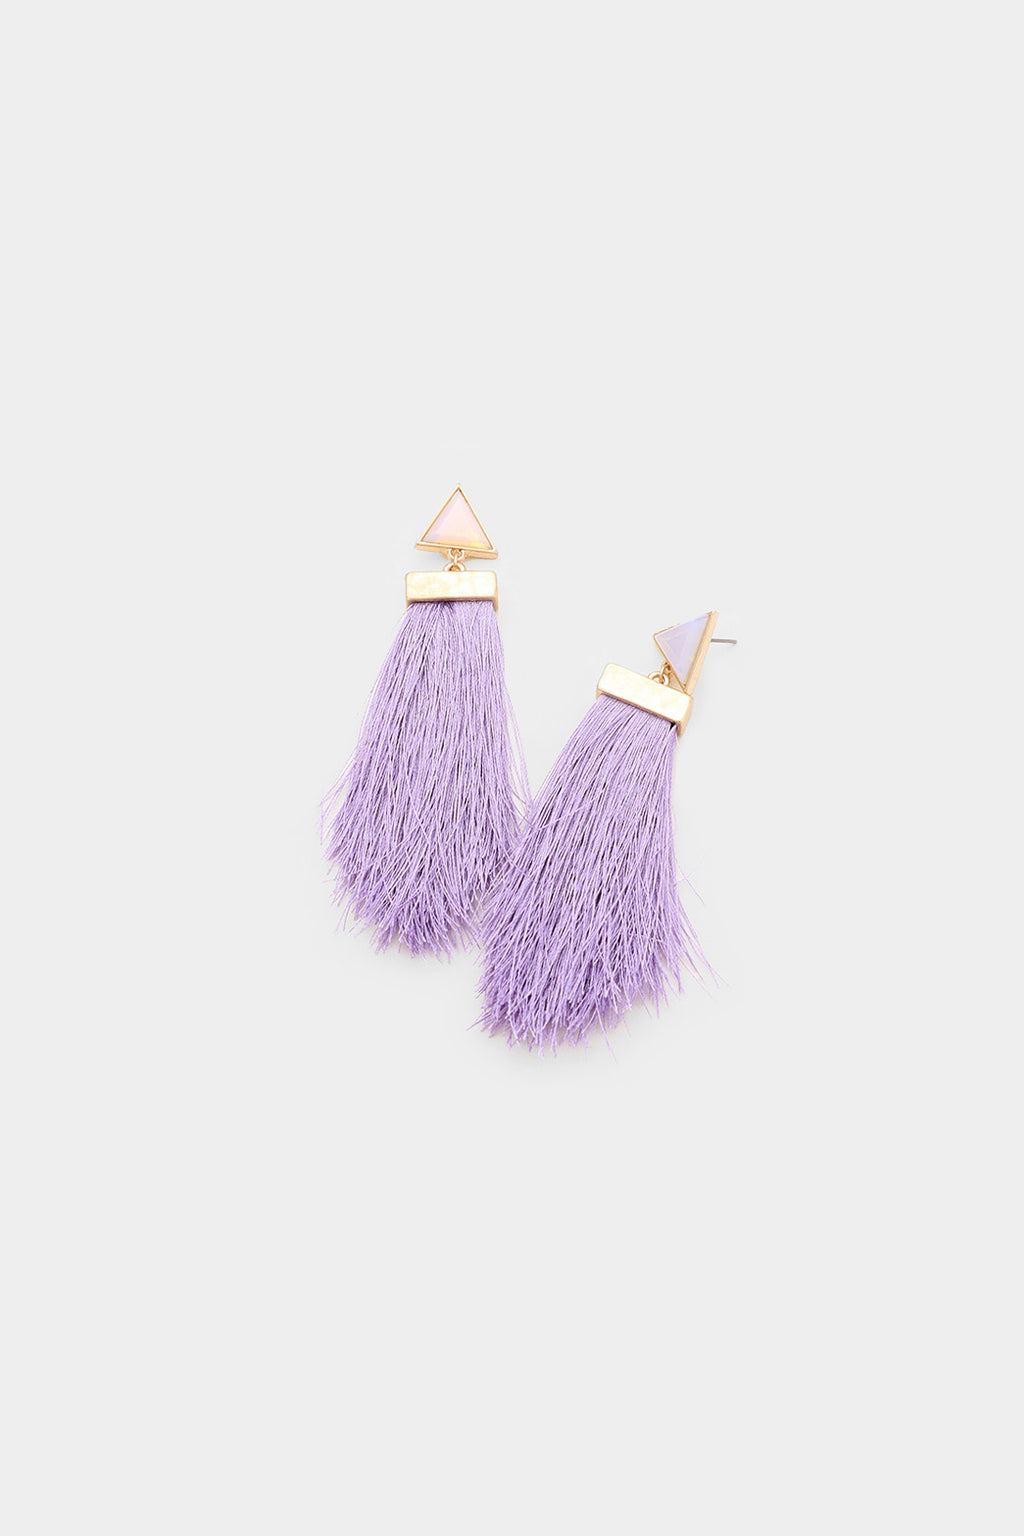 Semi Precious Triangle Stone Tassel Earrings